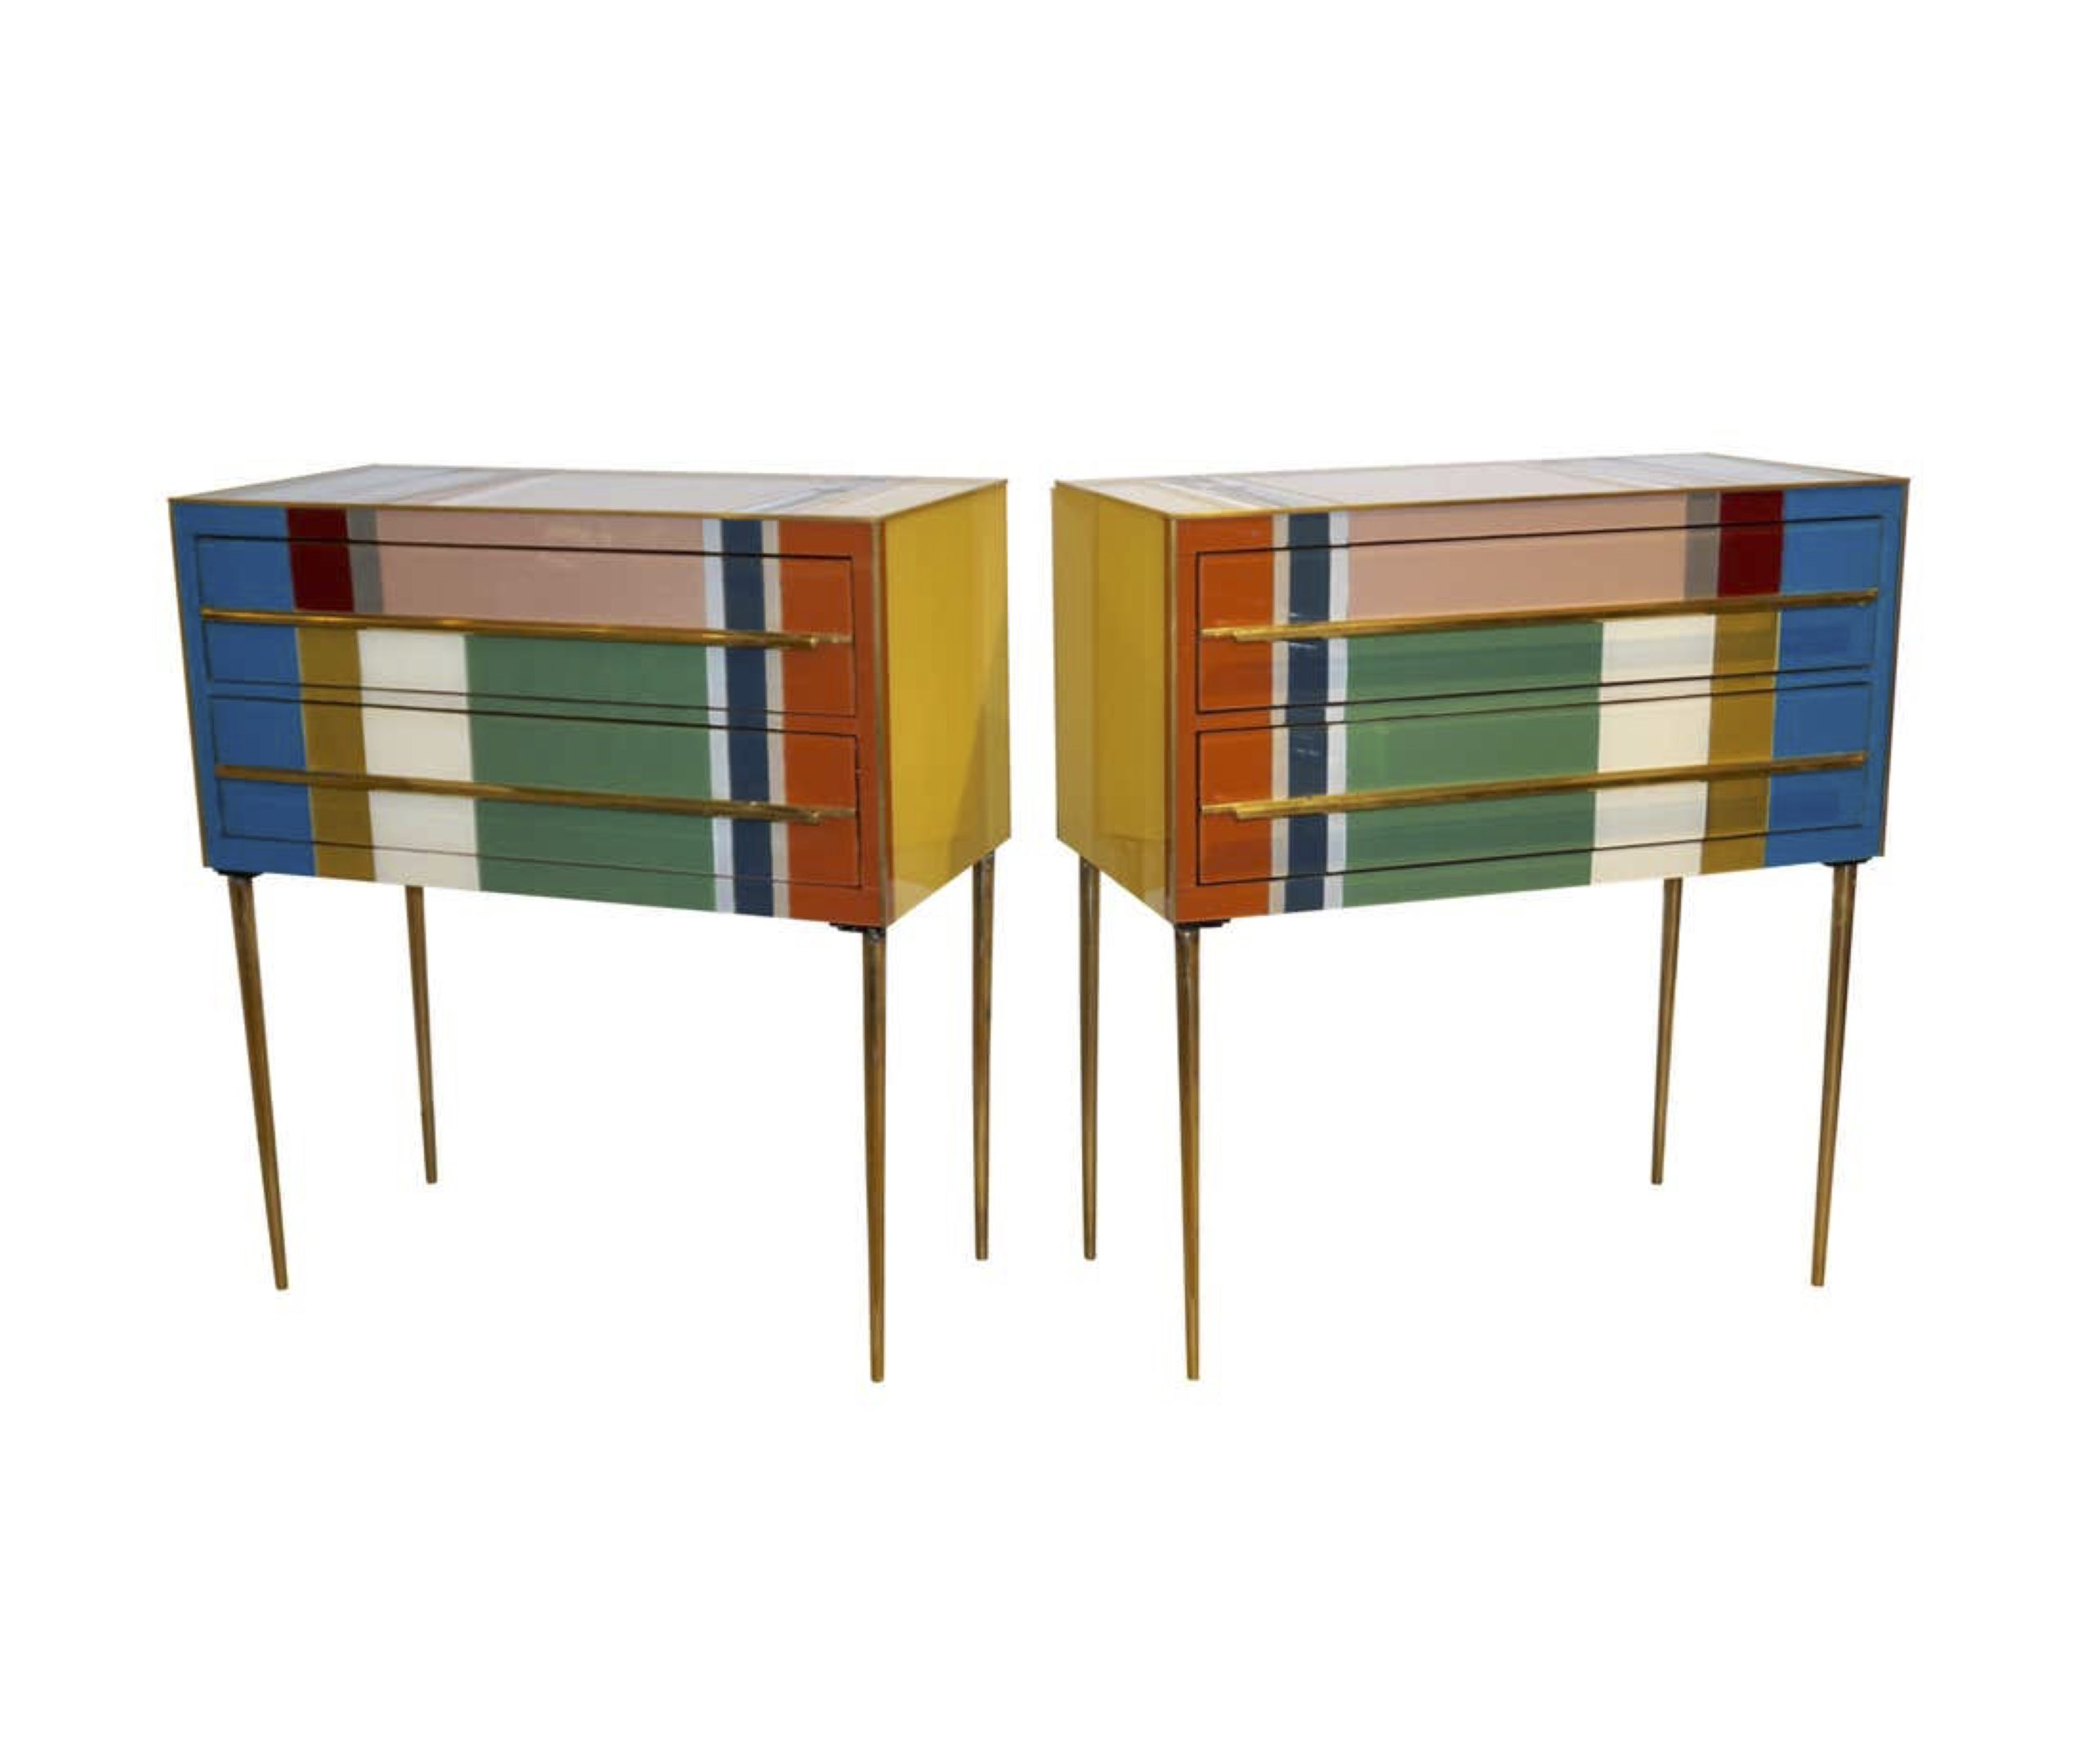 cosulich_interiors_and_antiques_products_new_york_design_bespoke_italian_pair_mondrian_style_blue_green_yellow_chests_end_tables-scaled-1